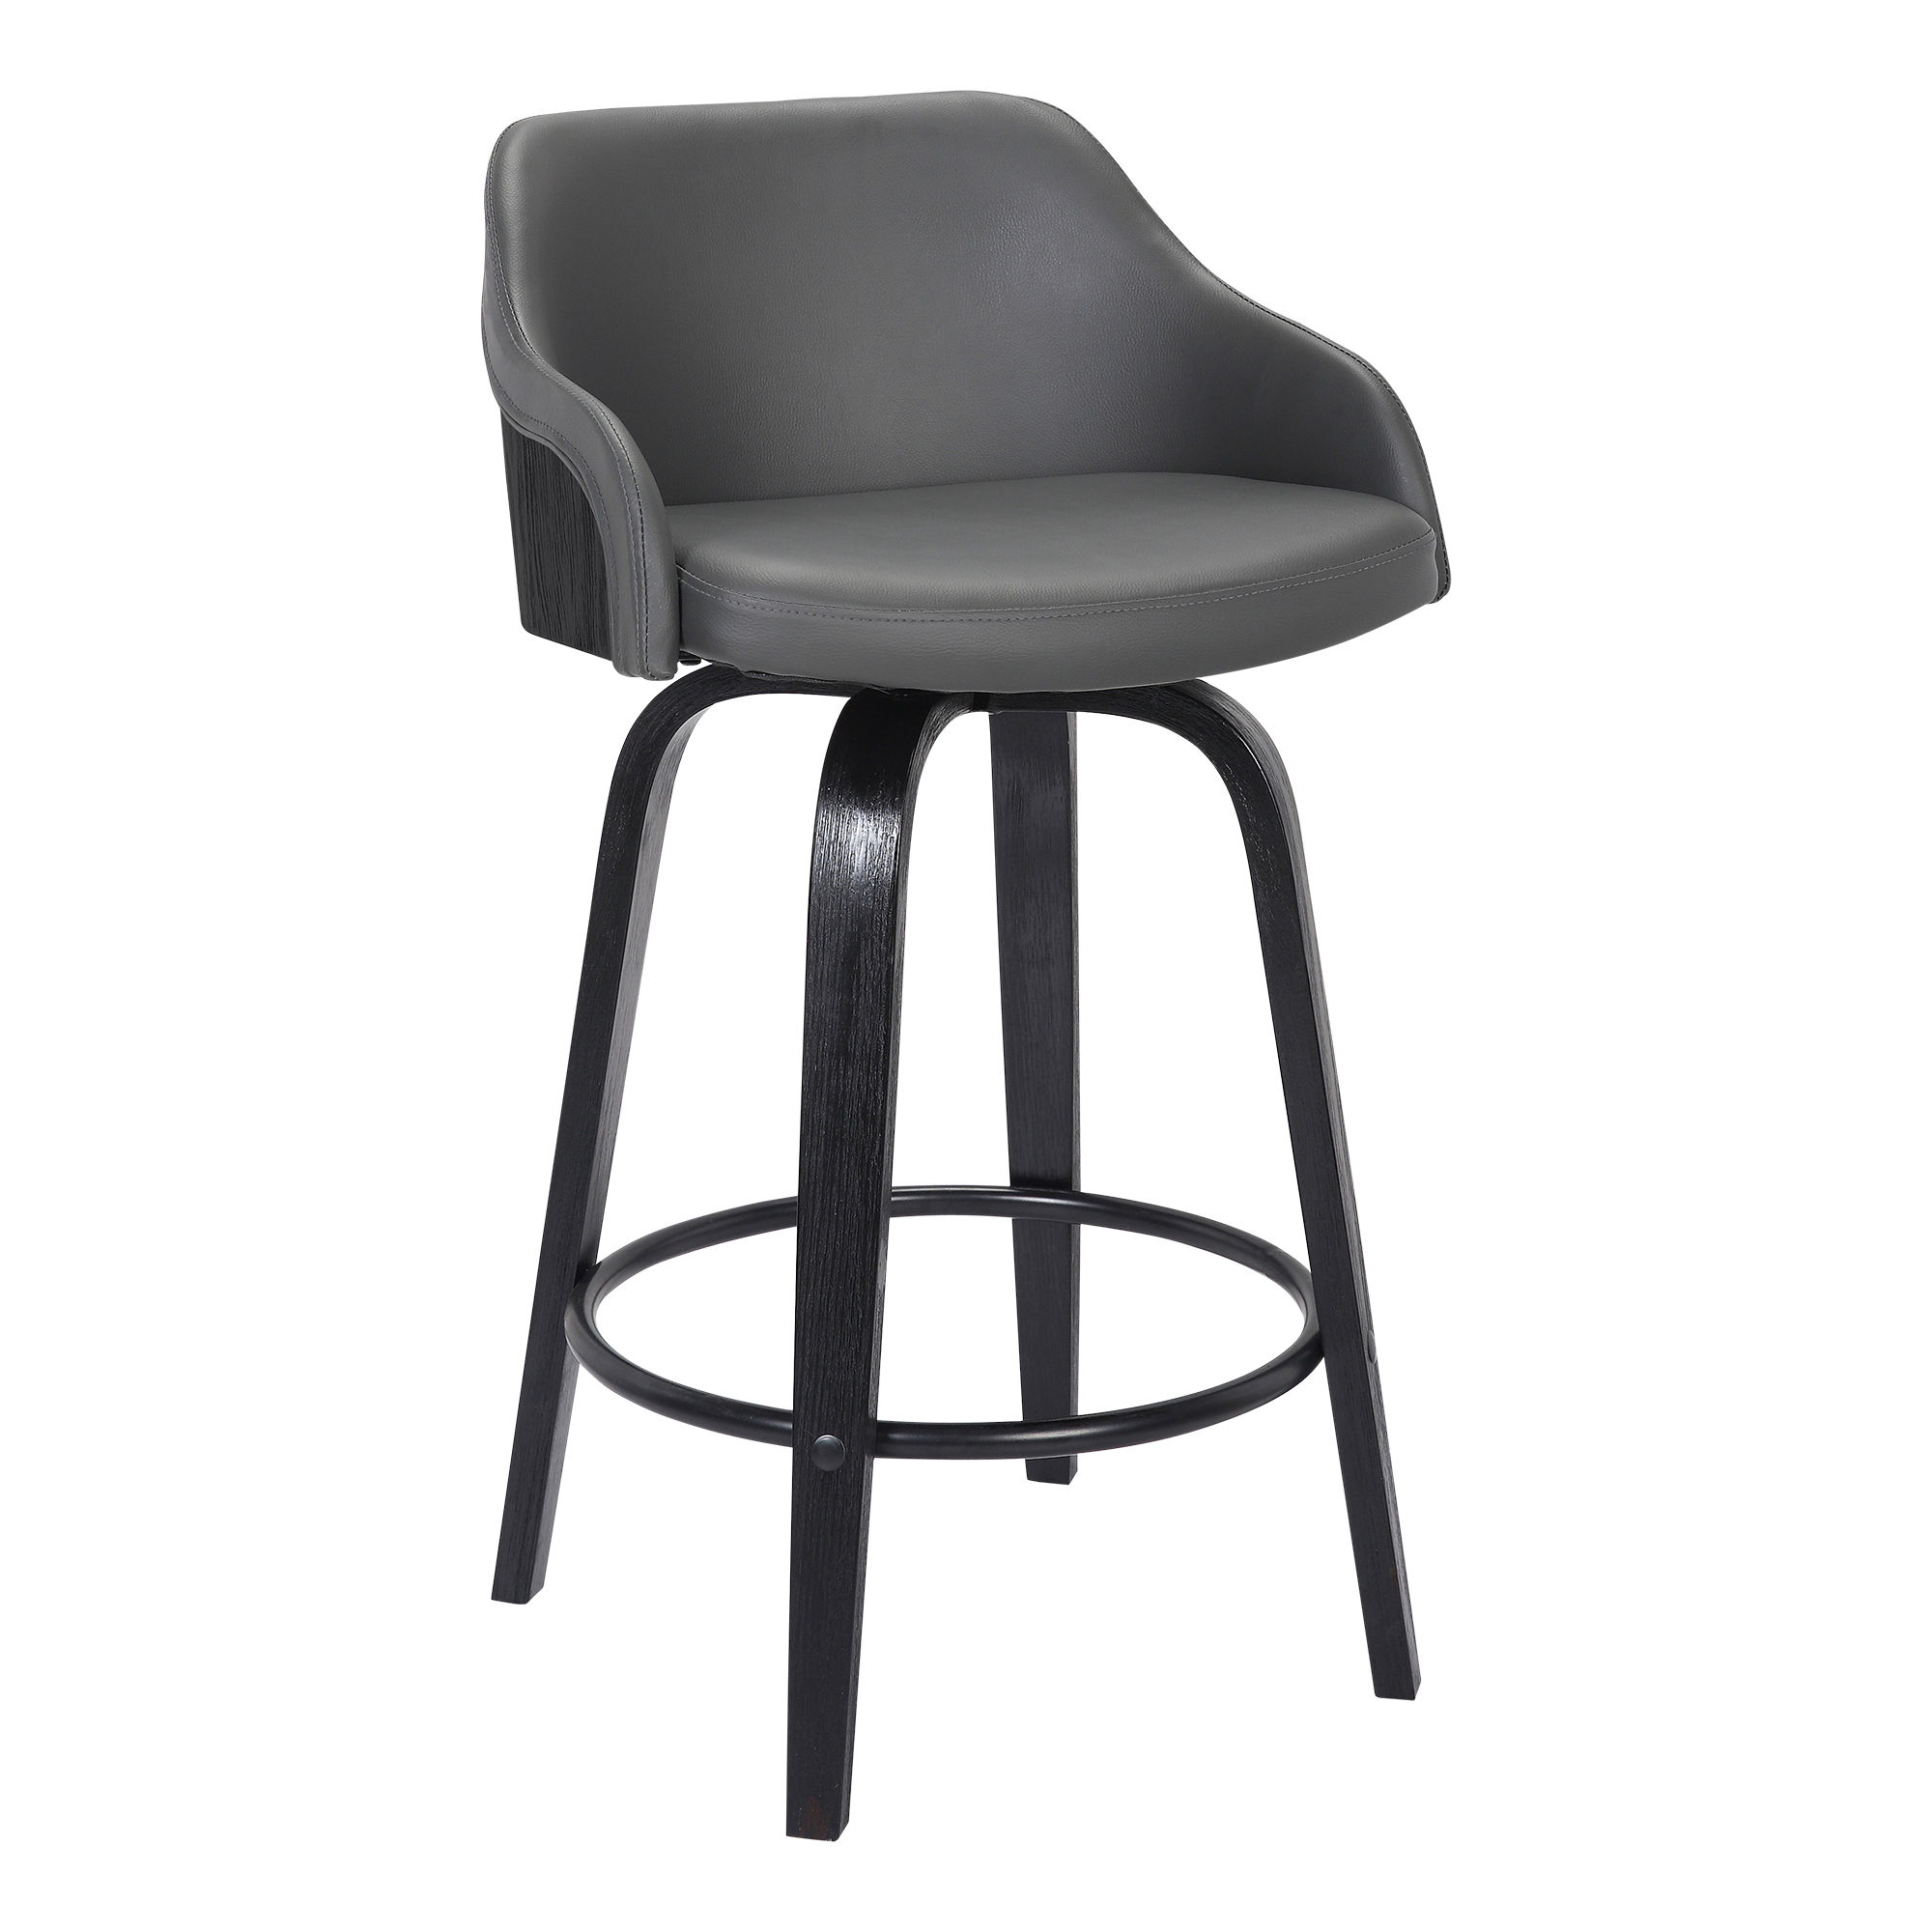 size 40 b0d44 5c24e Armen Living Alec Grey 30 Inch Swivel Bar Height Stool